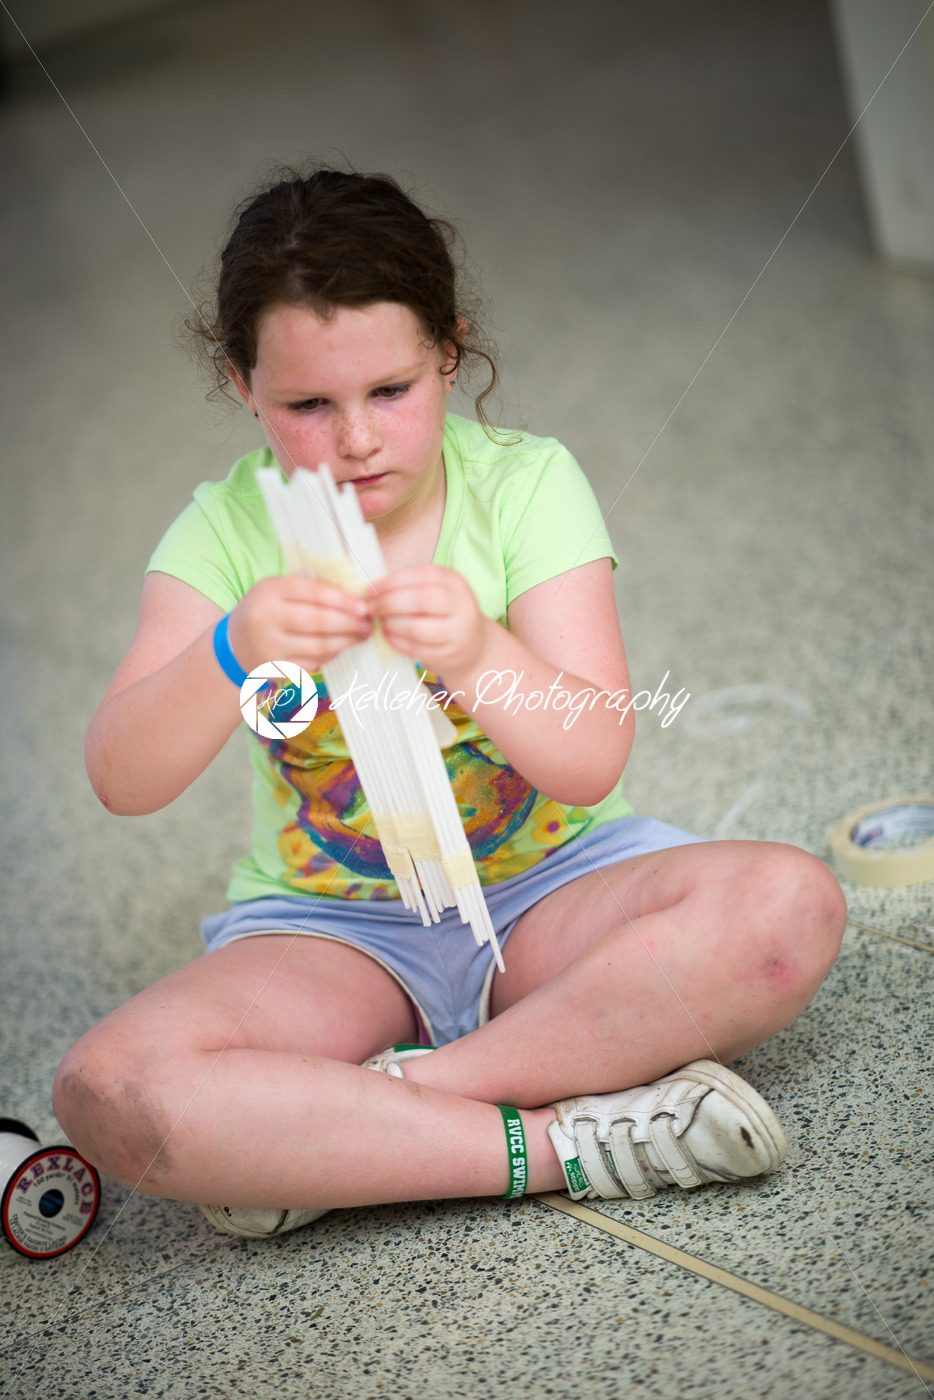 Creative young girl playing with straws - Kelleher Photography Store